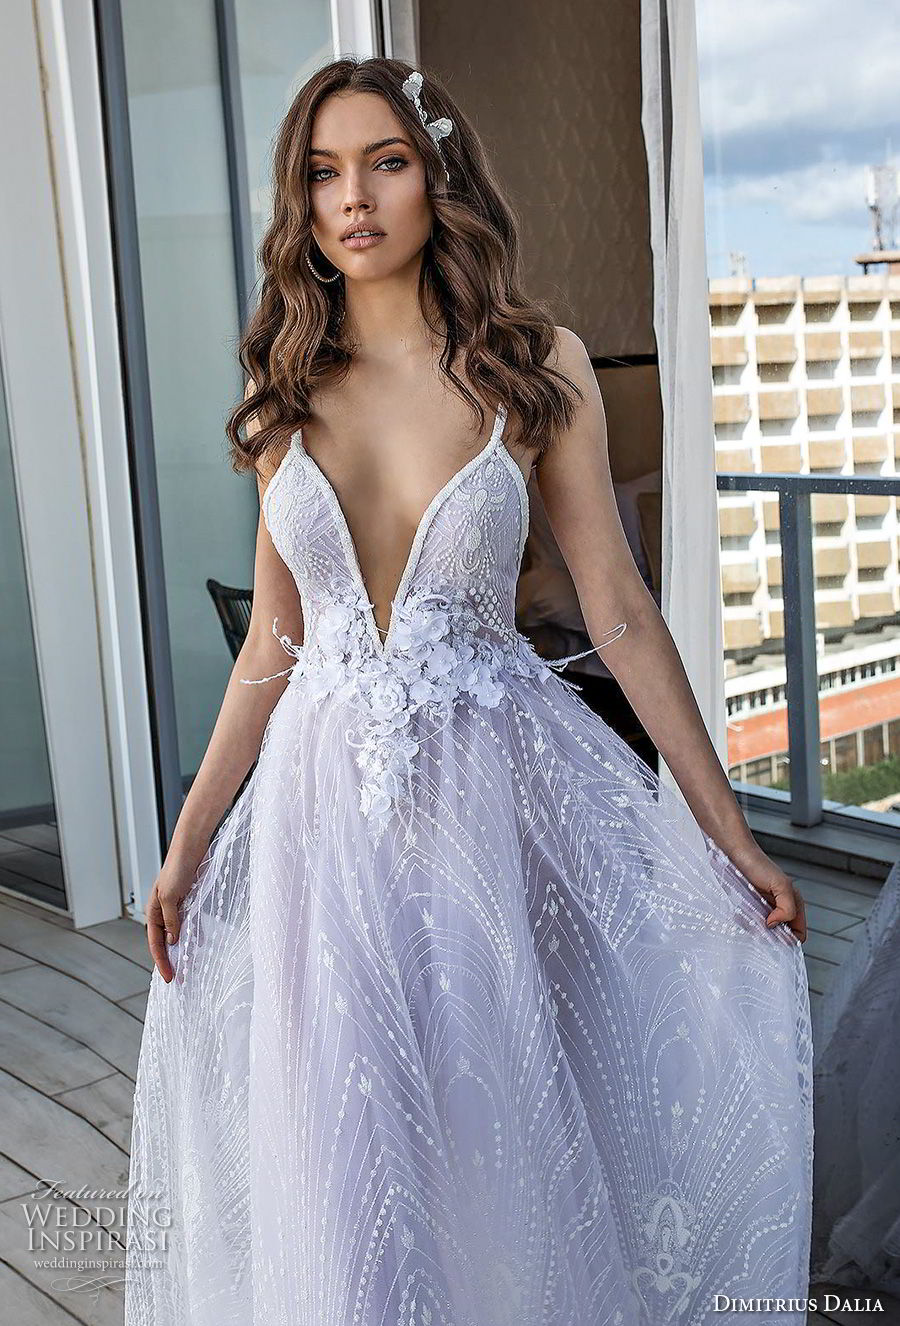 dimitrius dalia 2018 royal sleeveless thn strap deep sweetheart neckline full embellishment romantic sexy soft a line wedding dress open back sweep train (9) zv